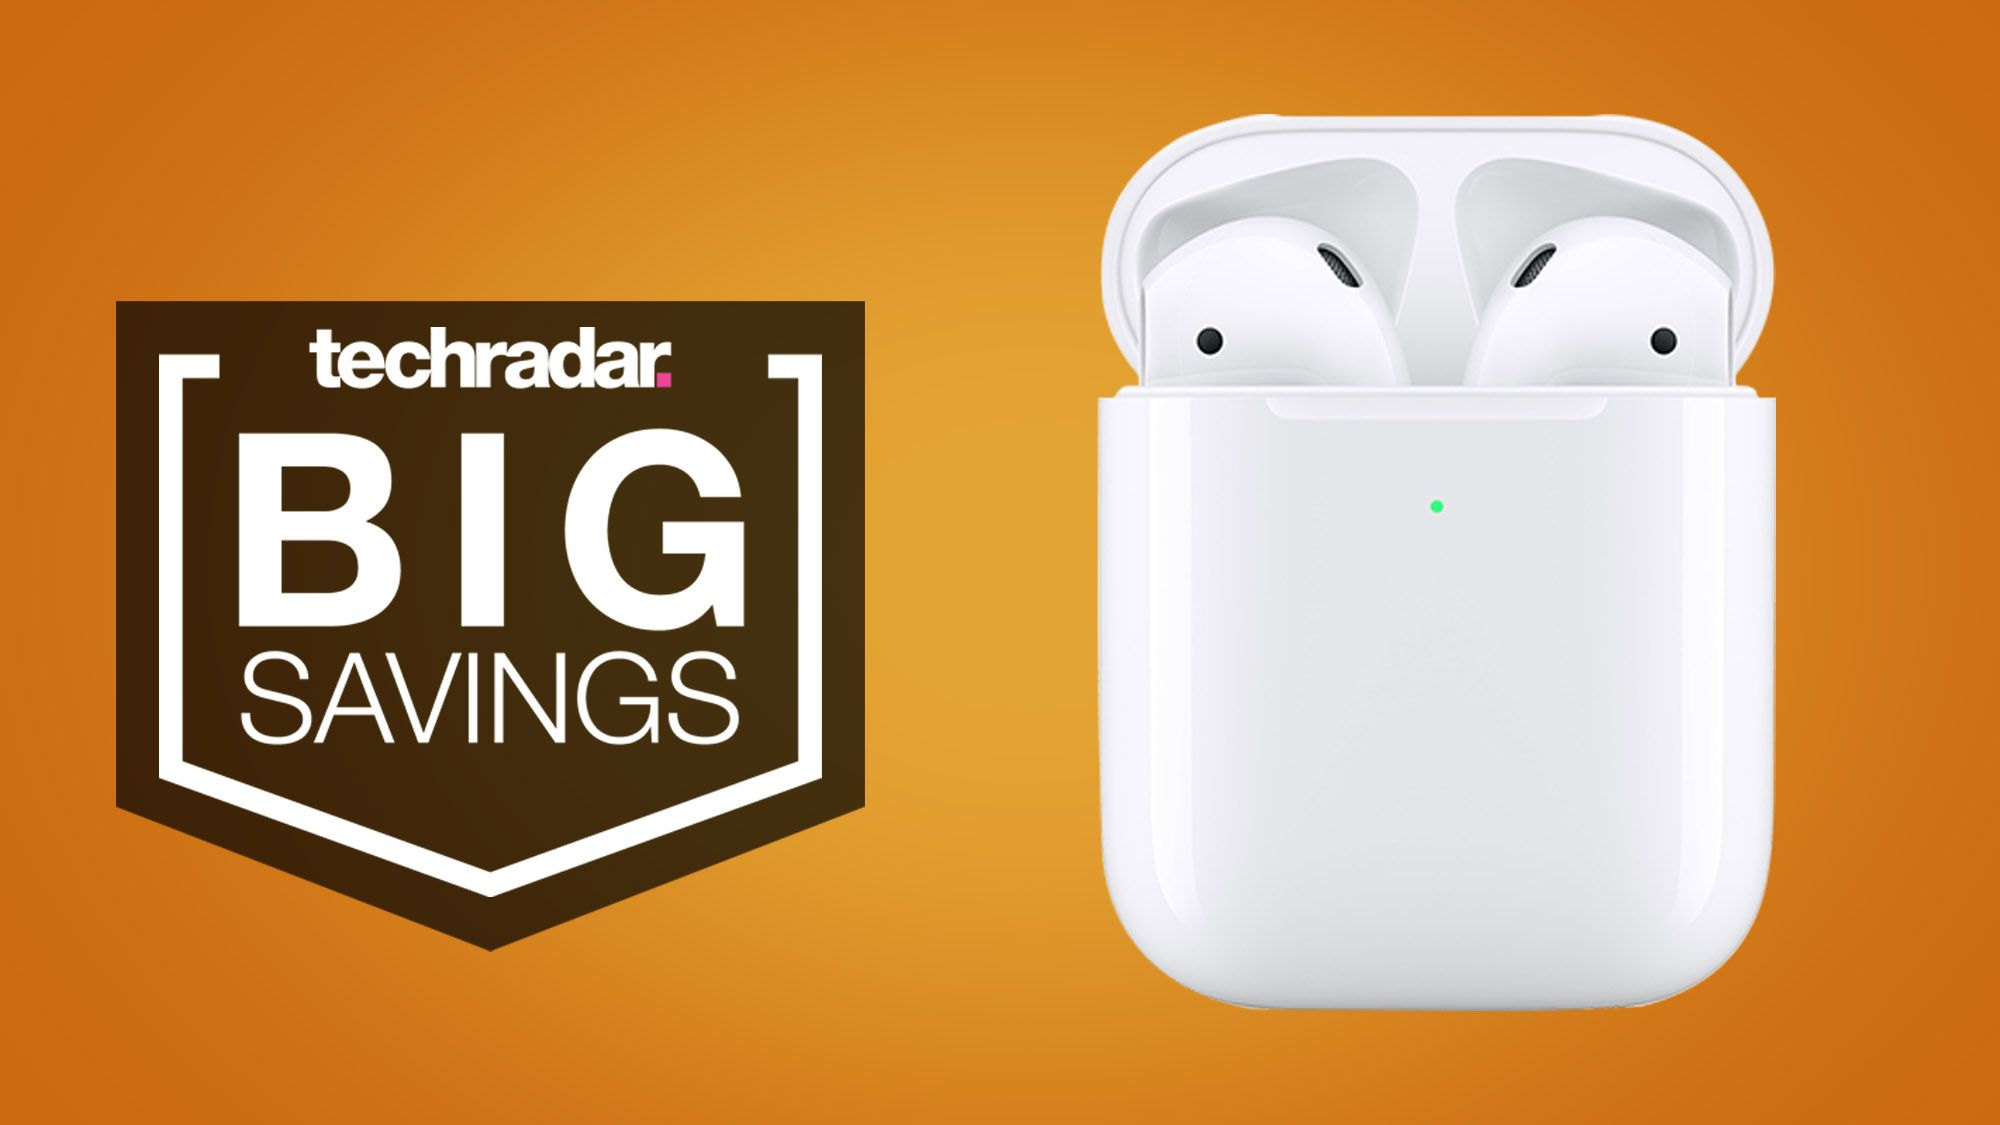 Apple Airpods Cyber Monday Deals 2020 Everything You Need To Know Iphone Cost Walmart Cyber Monday Amazon Black Friday